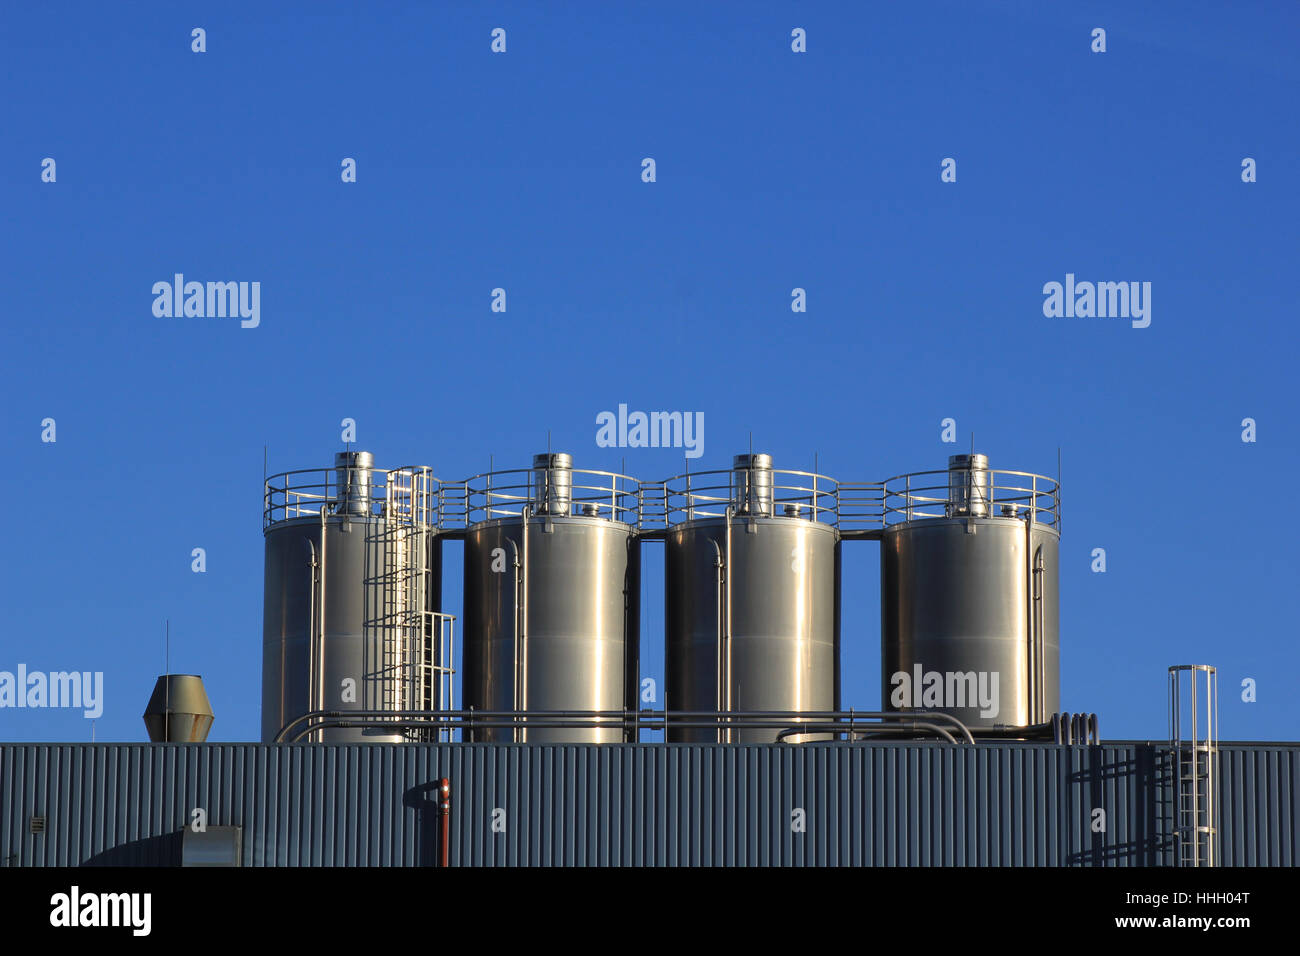 work, factory, chemical plant, work, factory, mill, chemical plant, cement - Stock Image